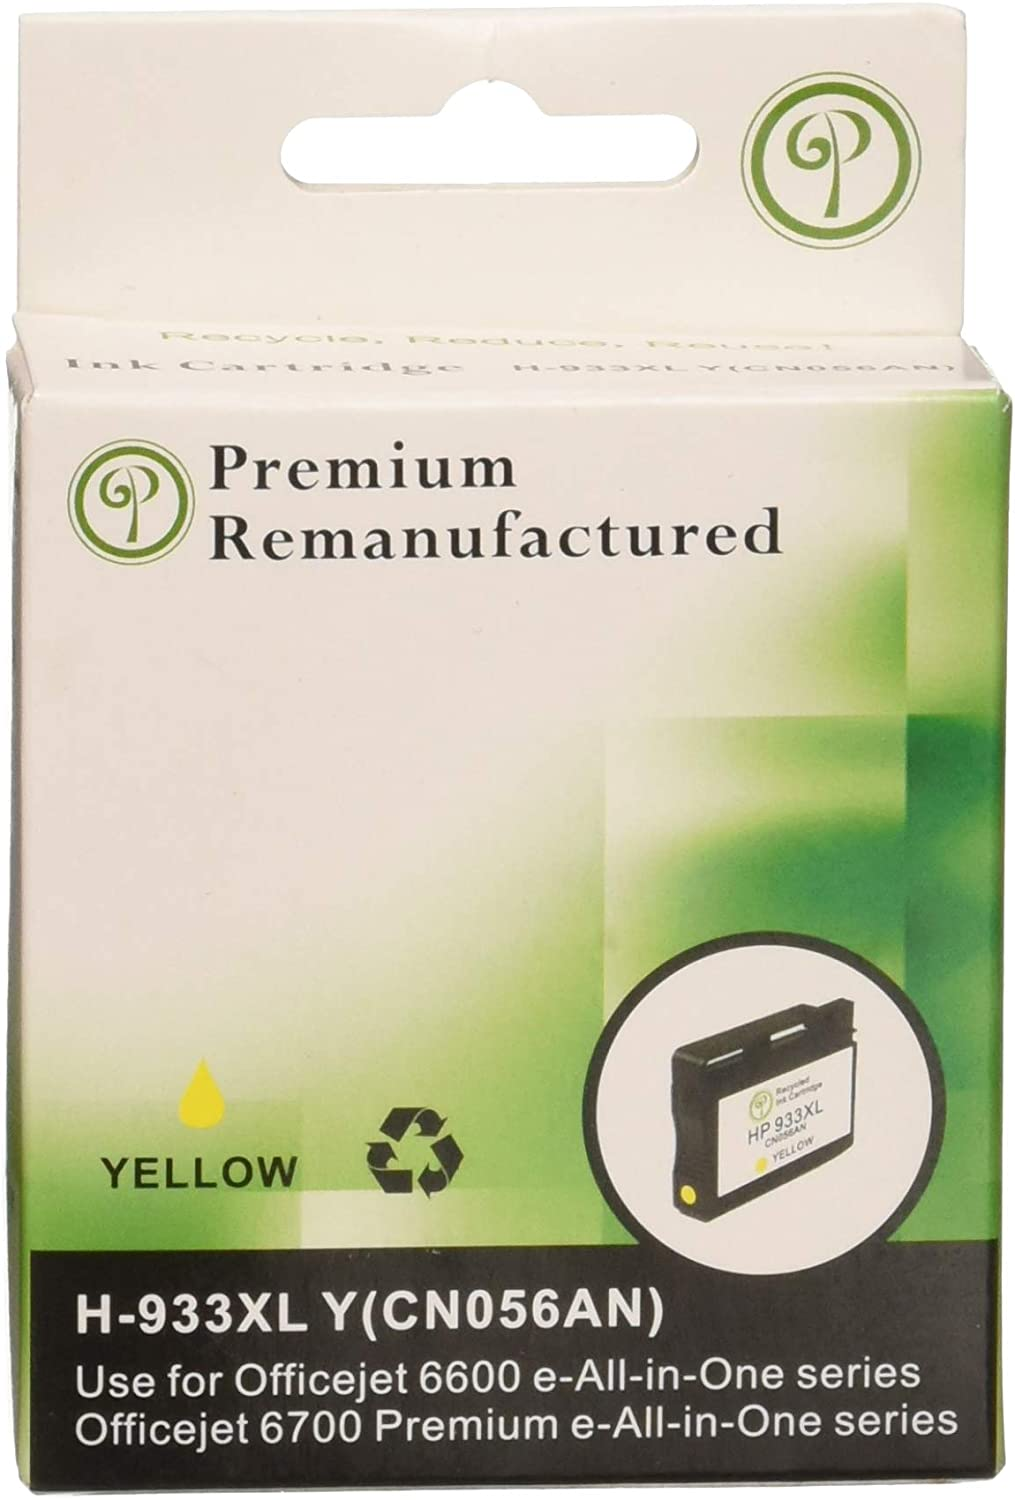 Monoprice 110718 MPI Remanufactured HP 933XL (CN056AN) High Yield Inkjet - Yellow